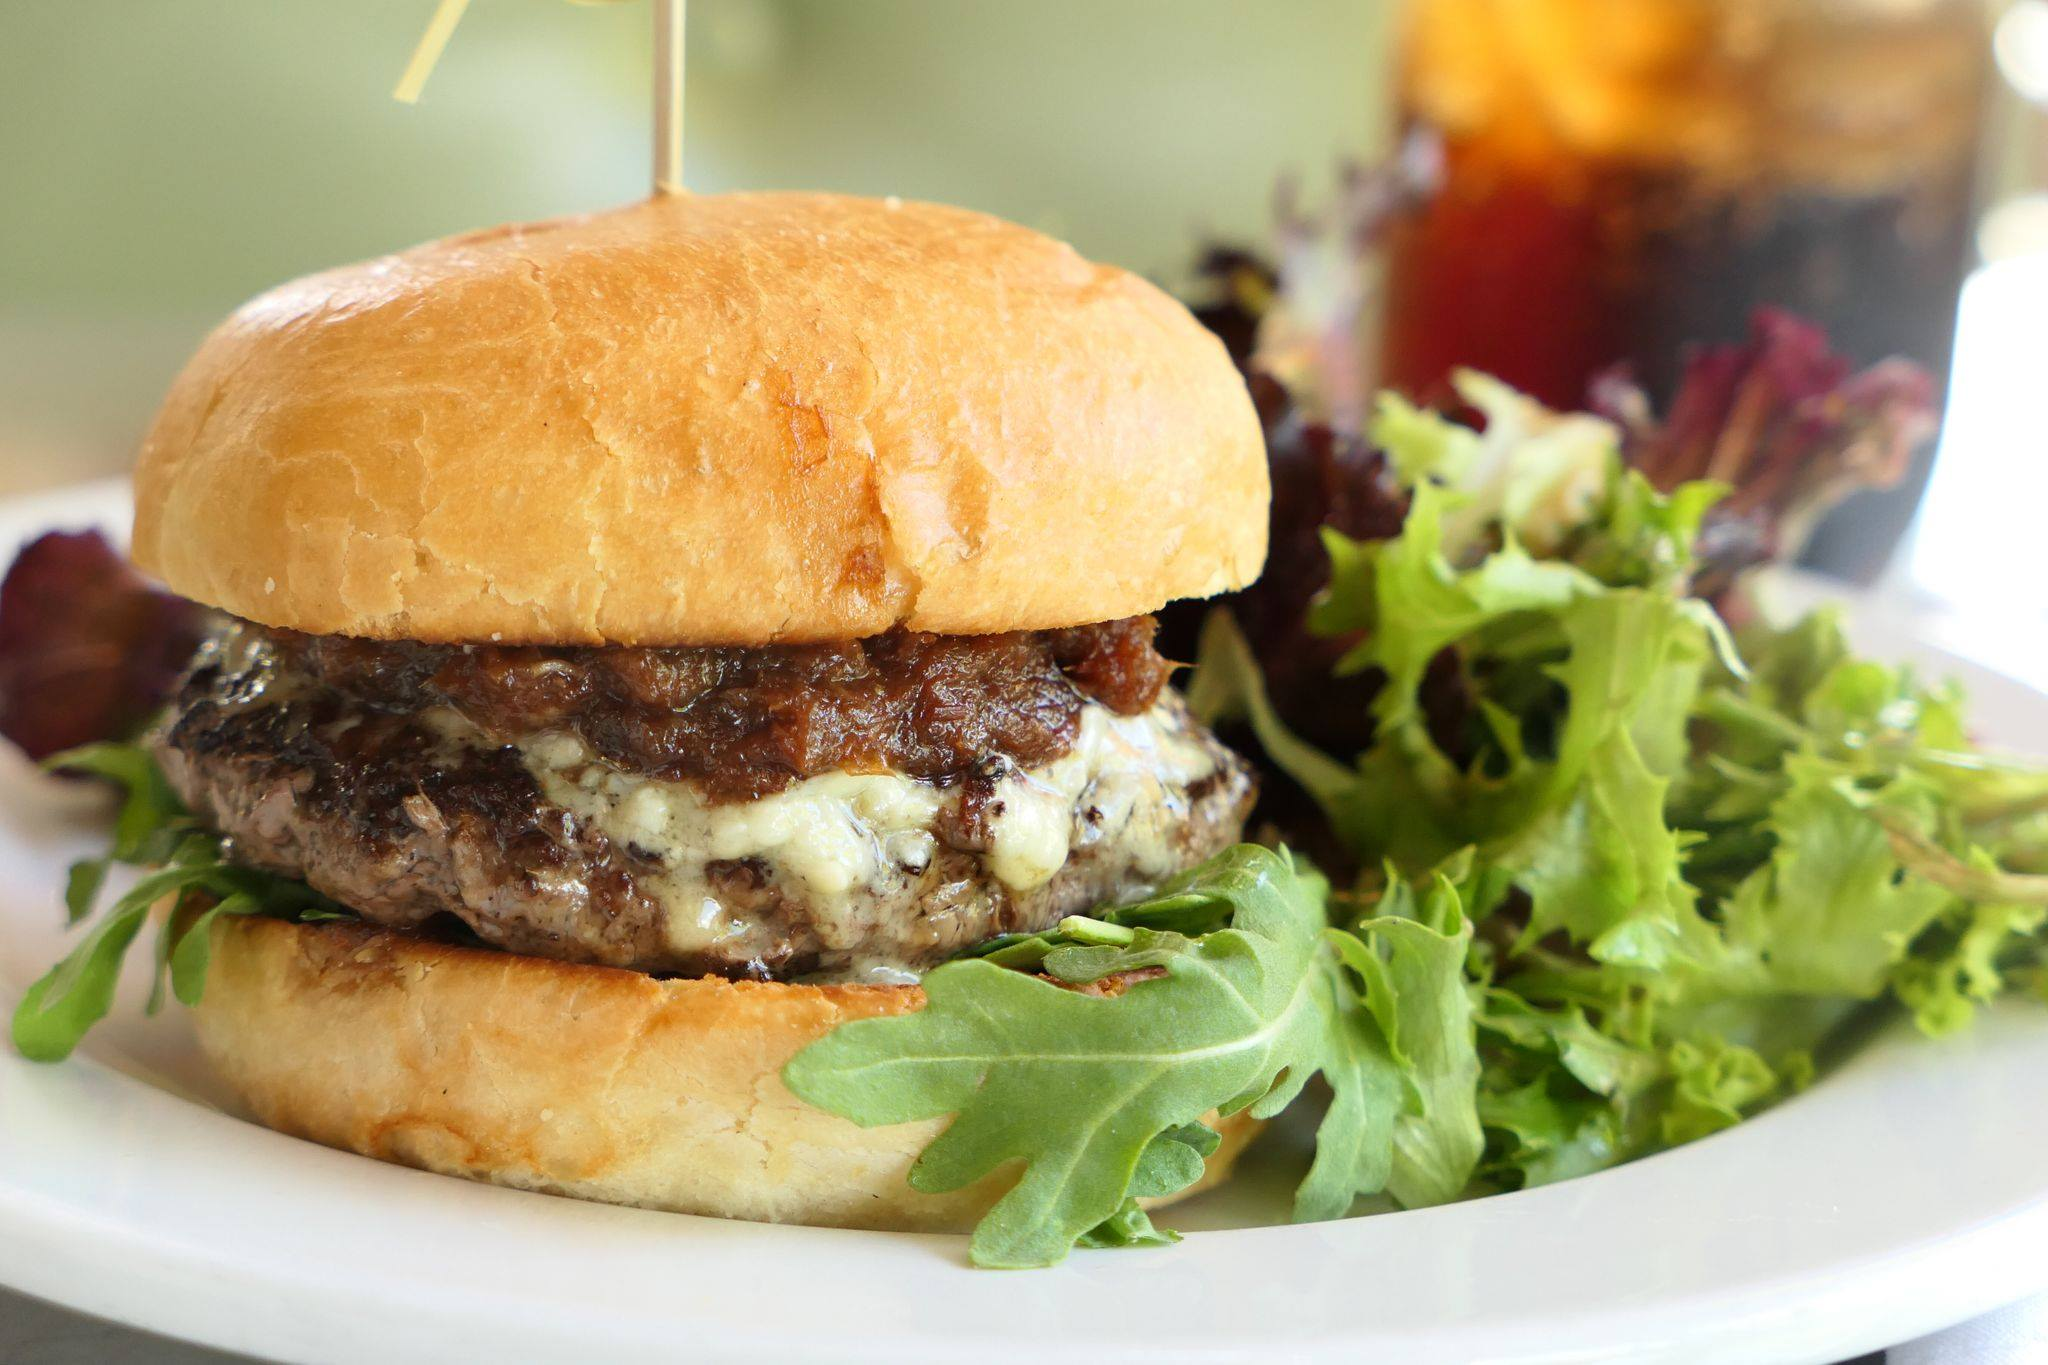 Close-up of a burger from Skillet